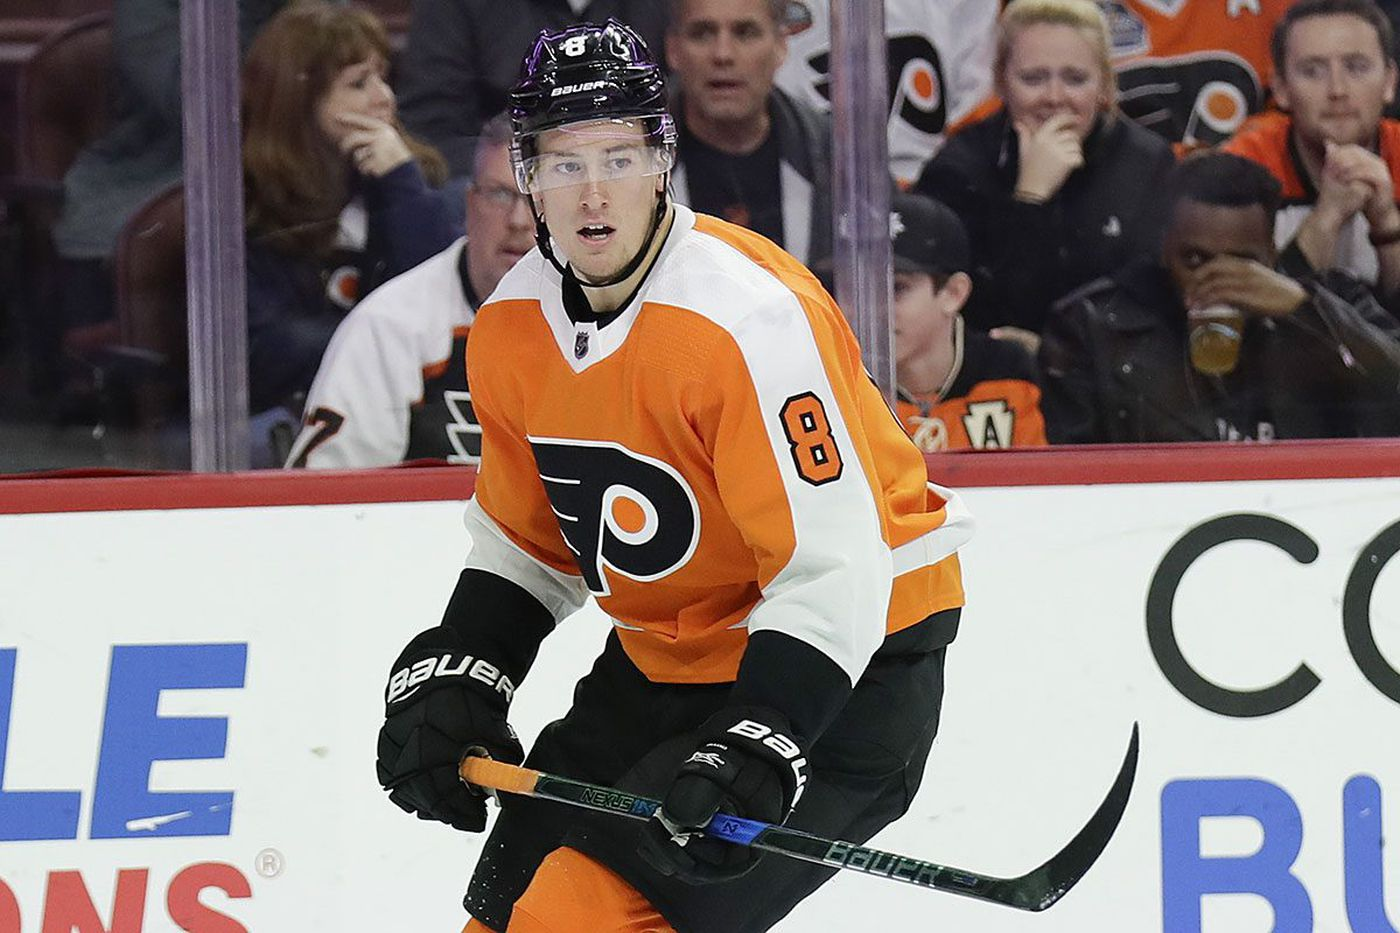 That didn't take long: Robert Hagg elevated to Flyers' top pairing